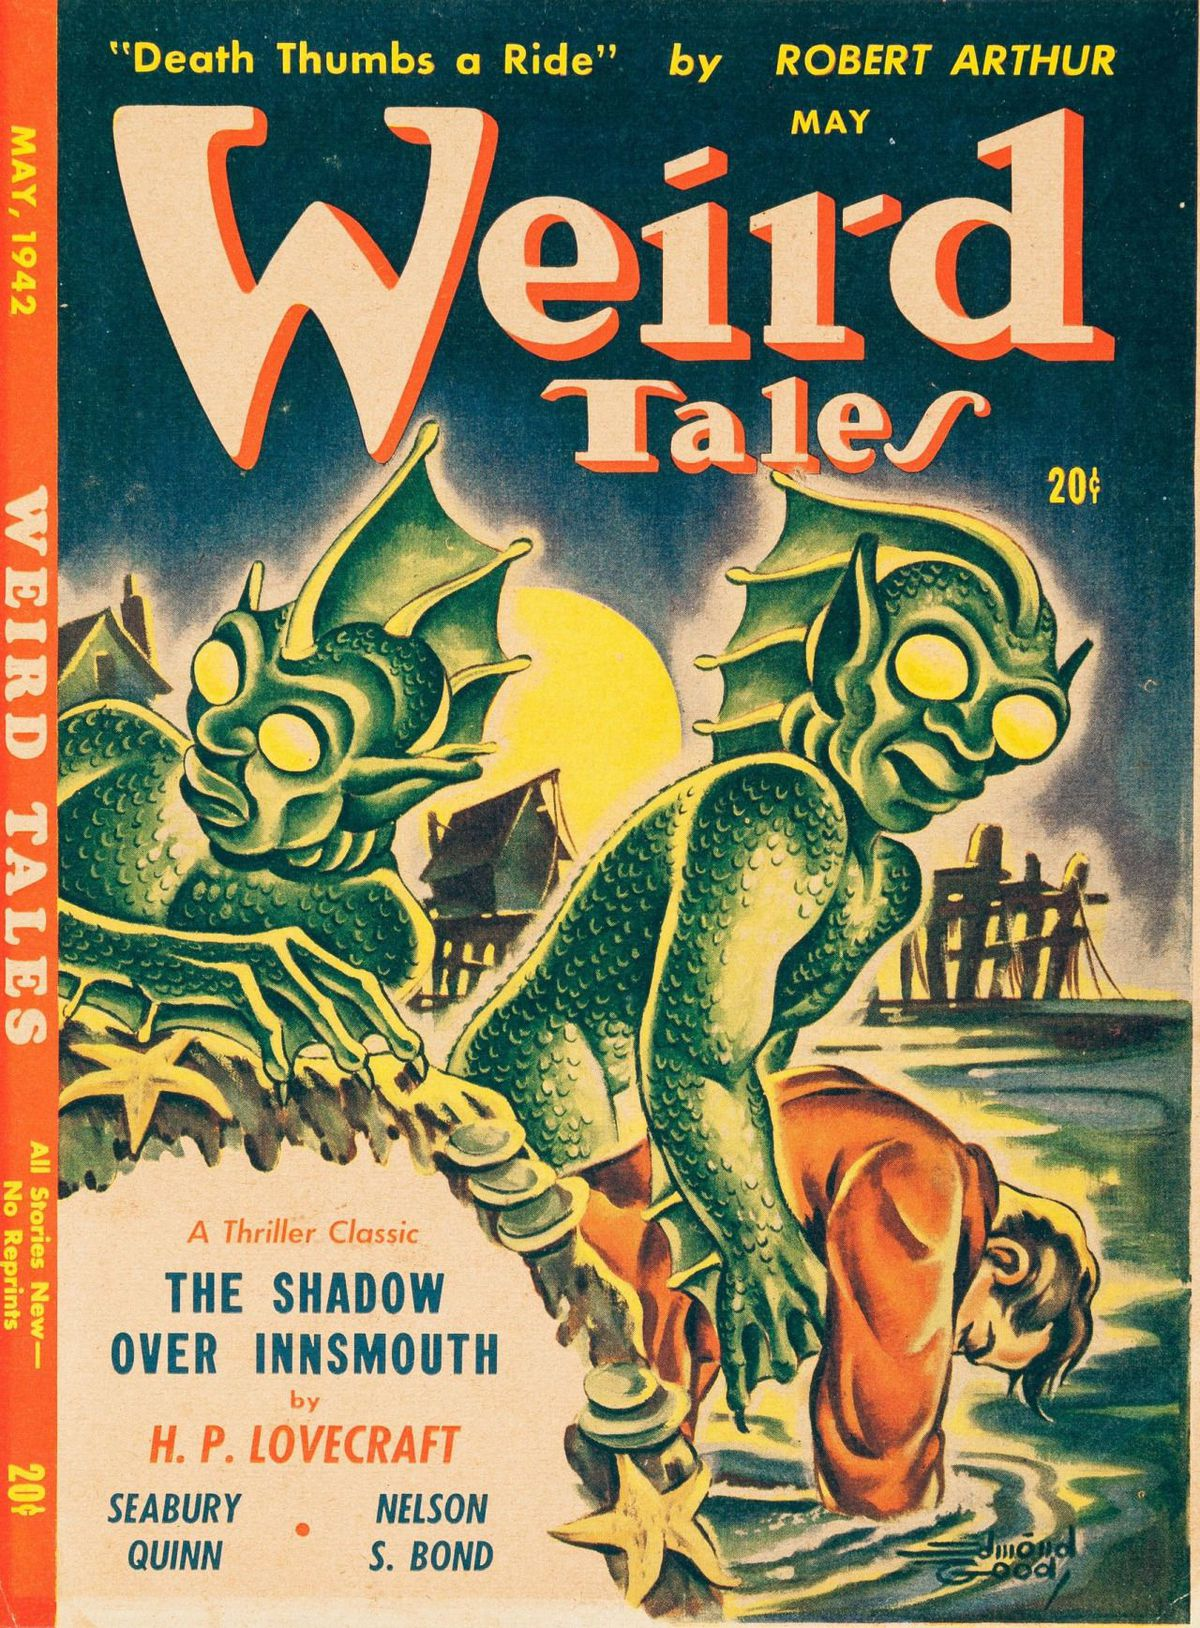 """The cover of the magazine """"Weird Tales"""" from 1942."""